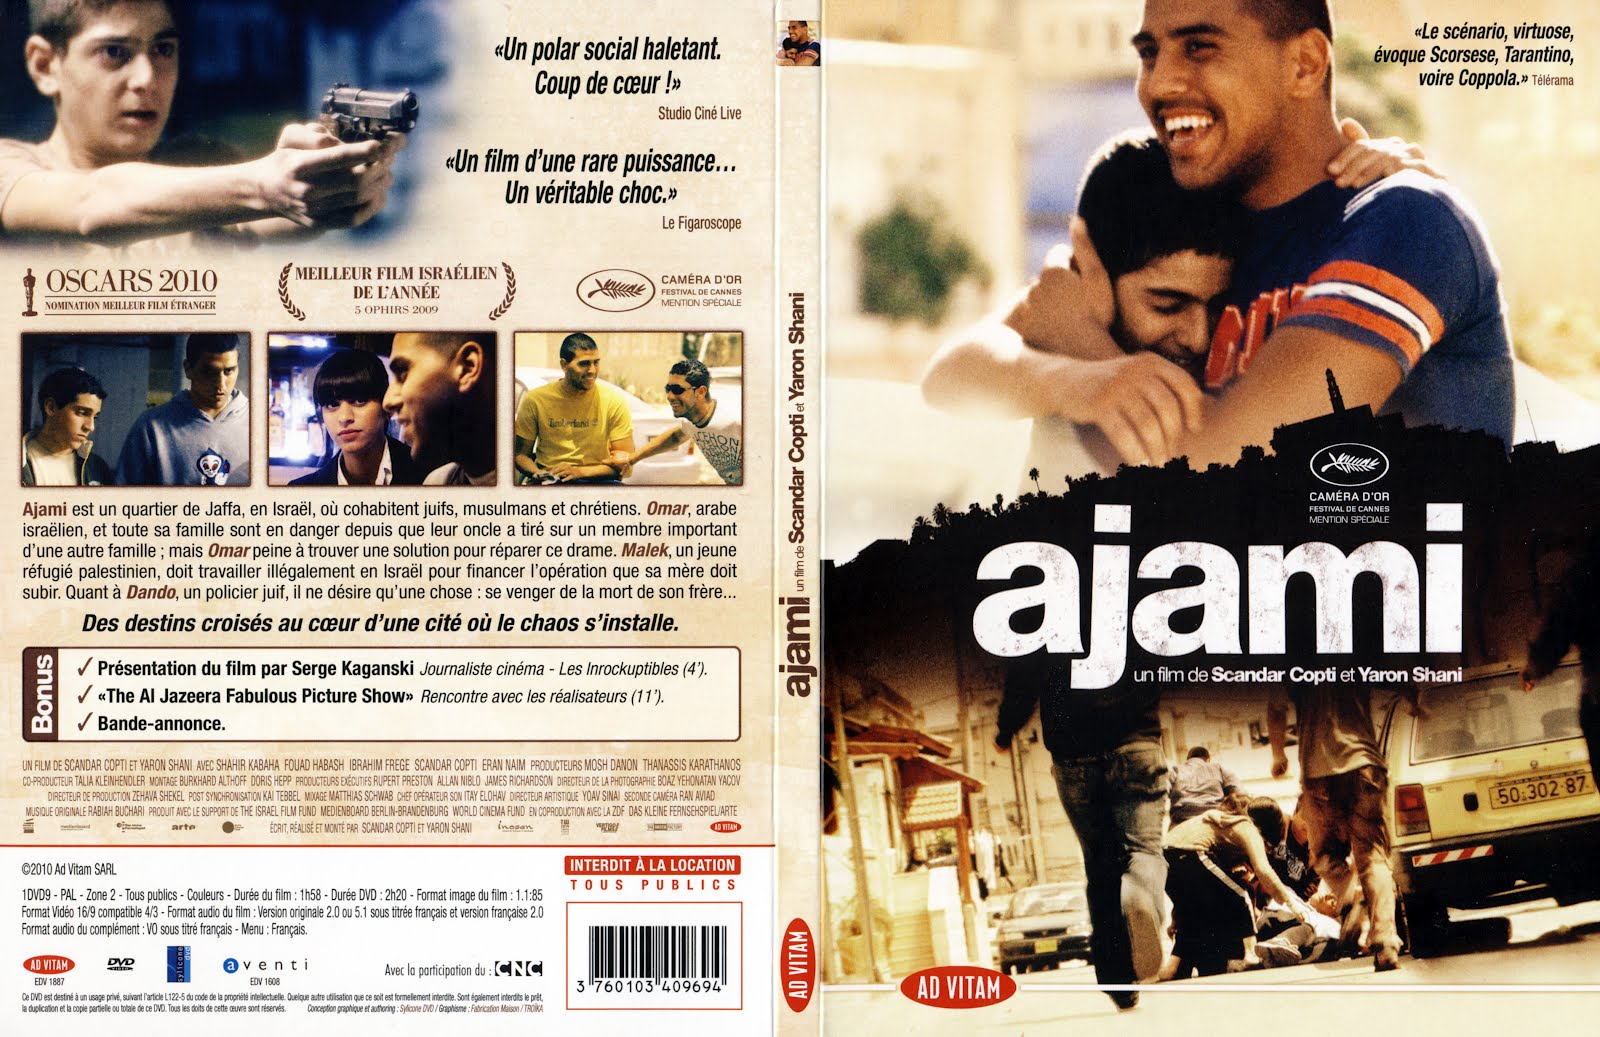 Ajami Dvd Front Cover